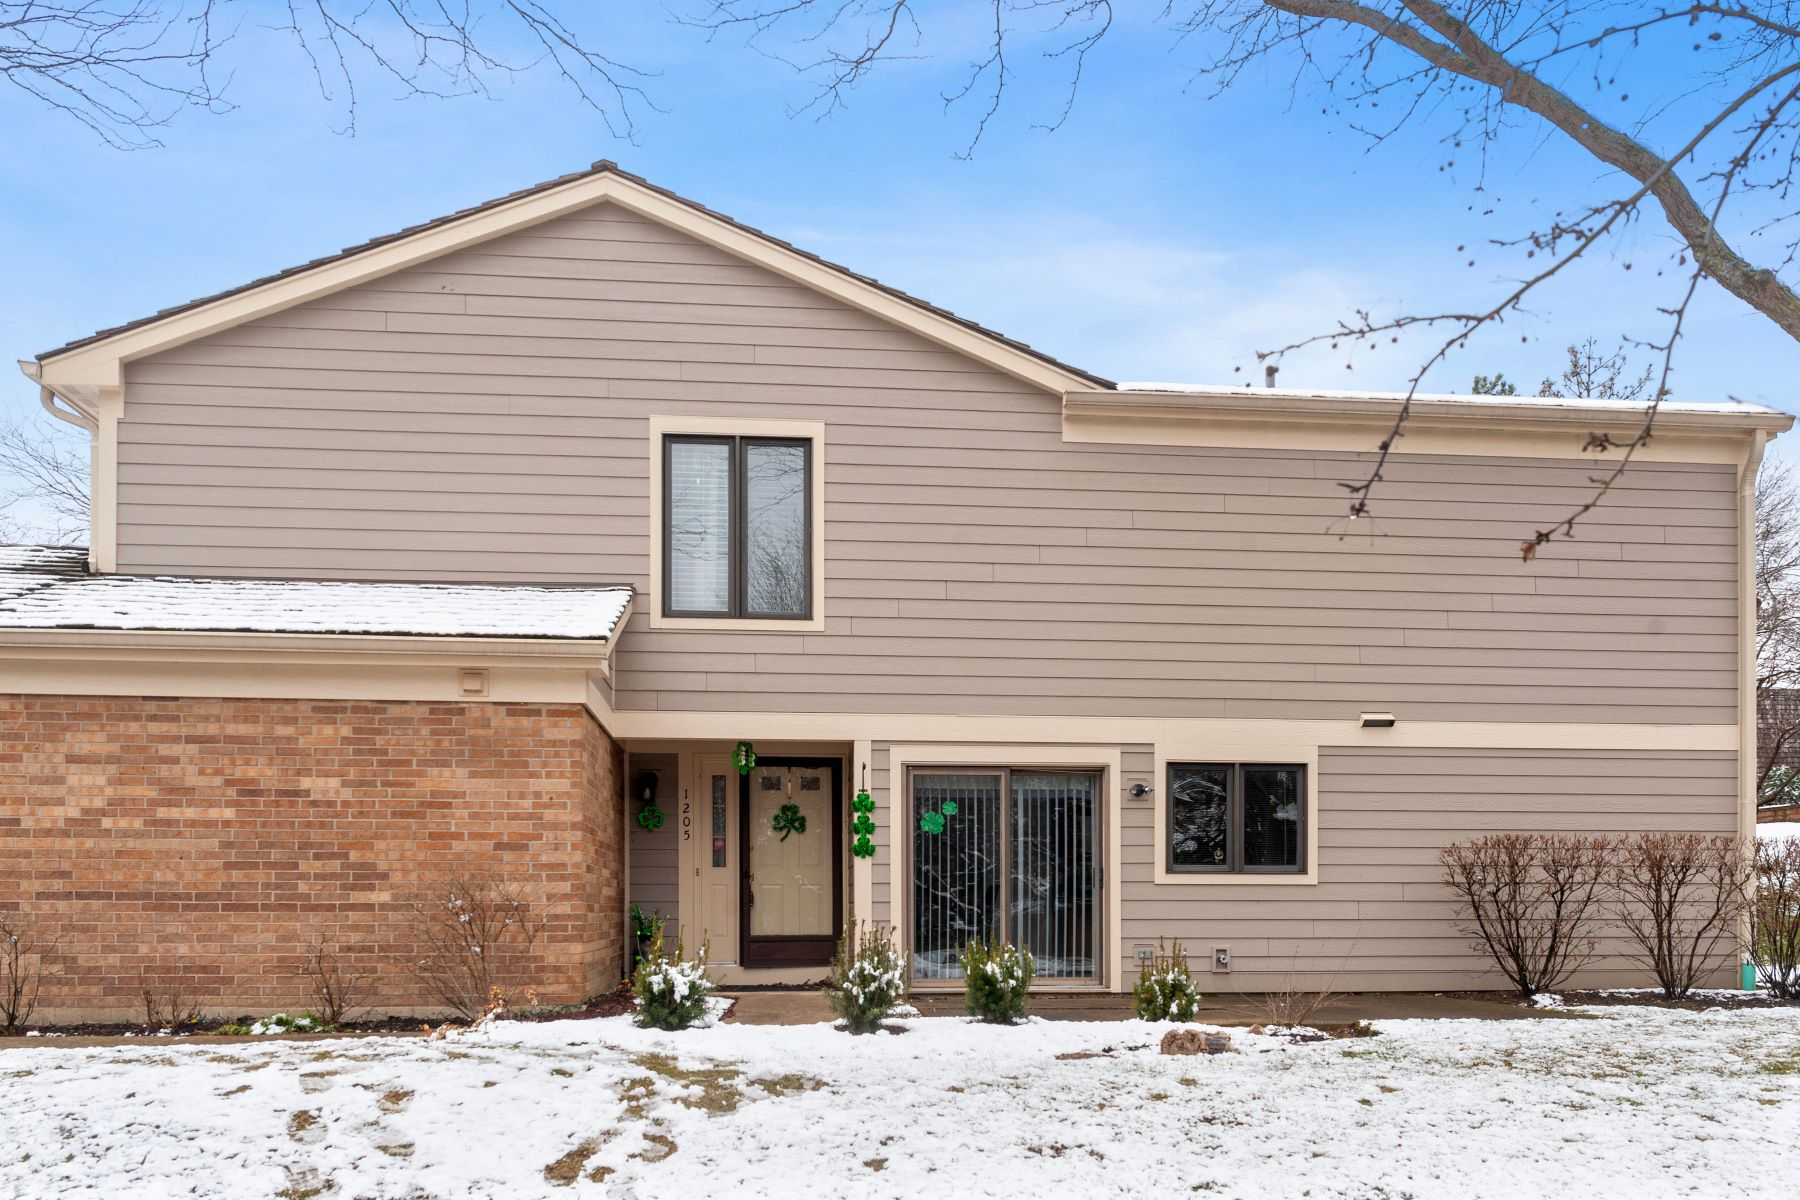 Single Family Homes for Active at Sunny And Bright End Unit 1205 Flamingo Parkway Libertyville, Illinois 60048 United States